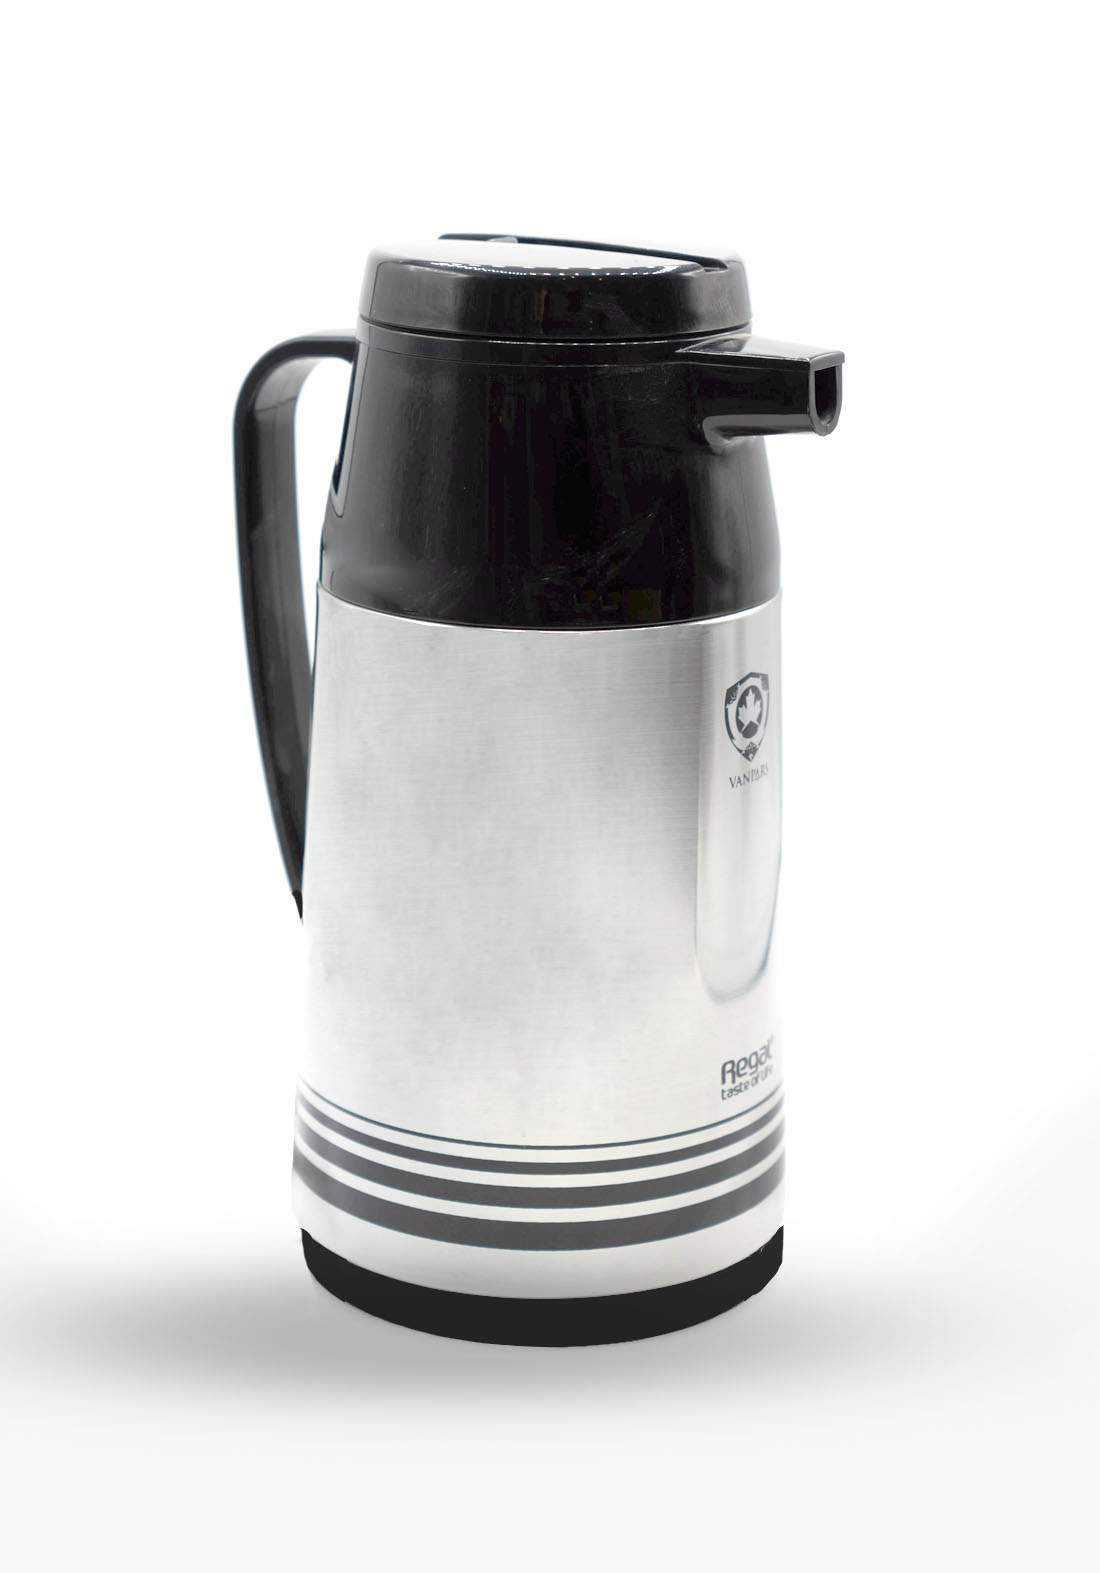 Regal  Stainless Steel Thermos Bottle 1L ترمز حراري مقاوم للصدأ